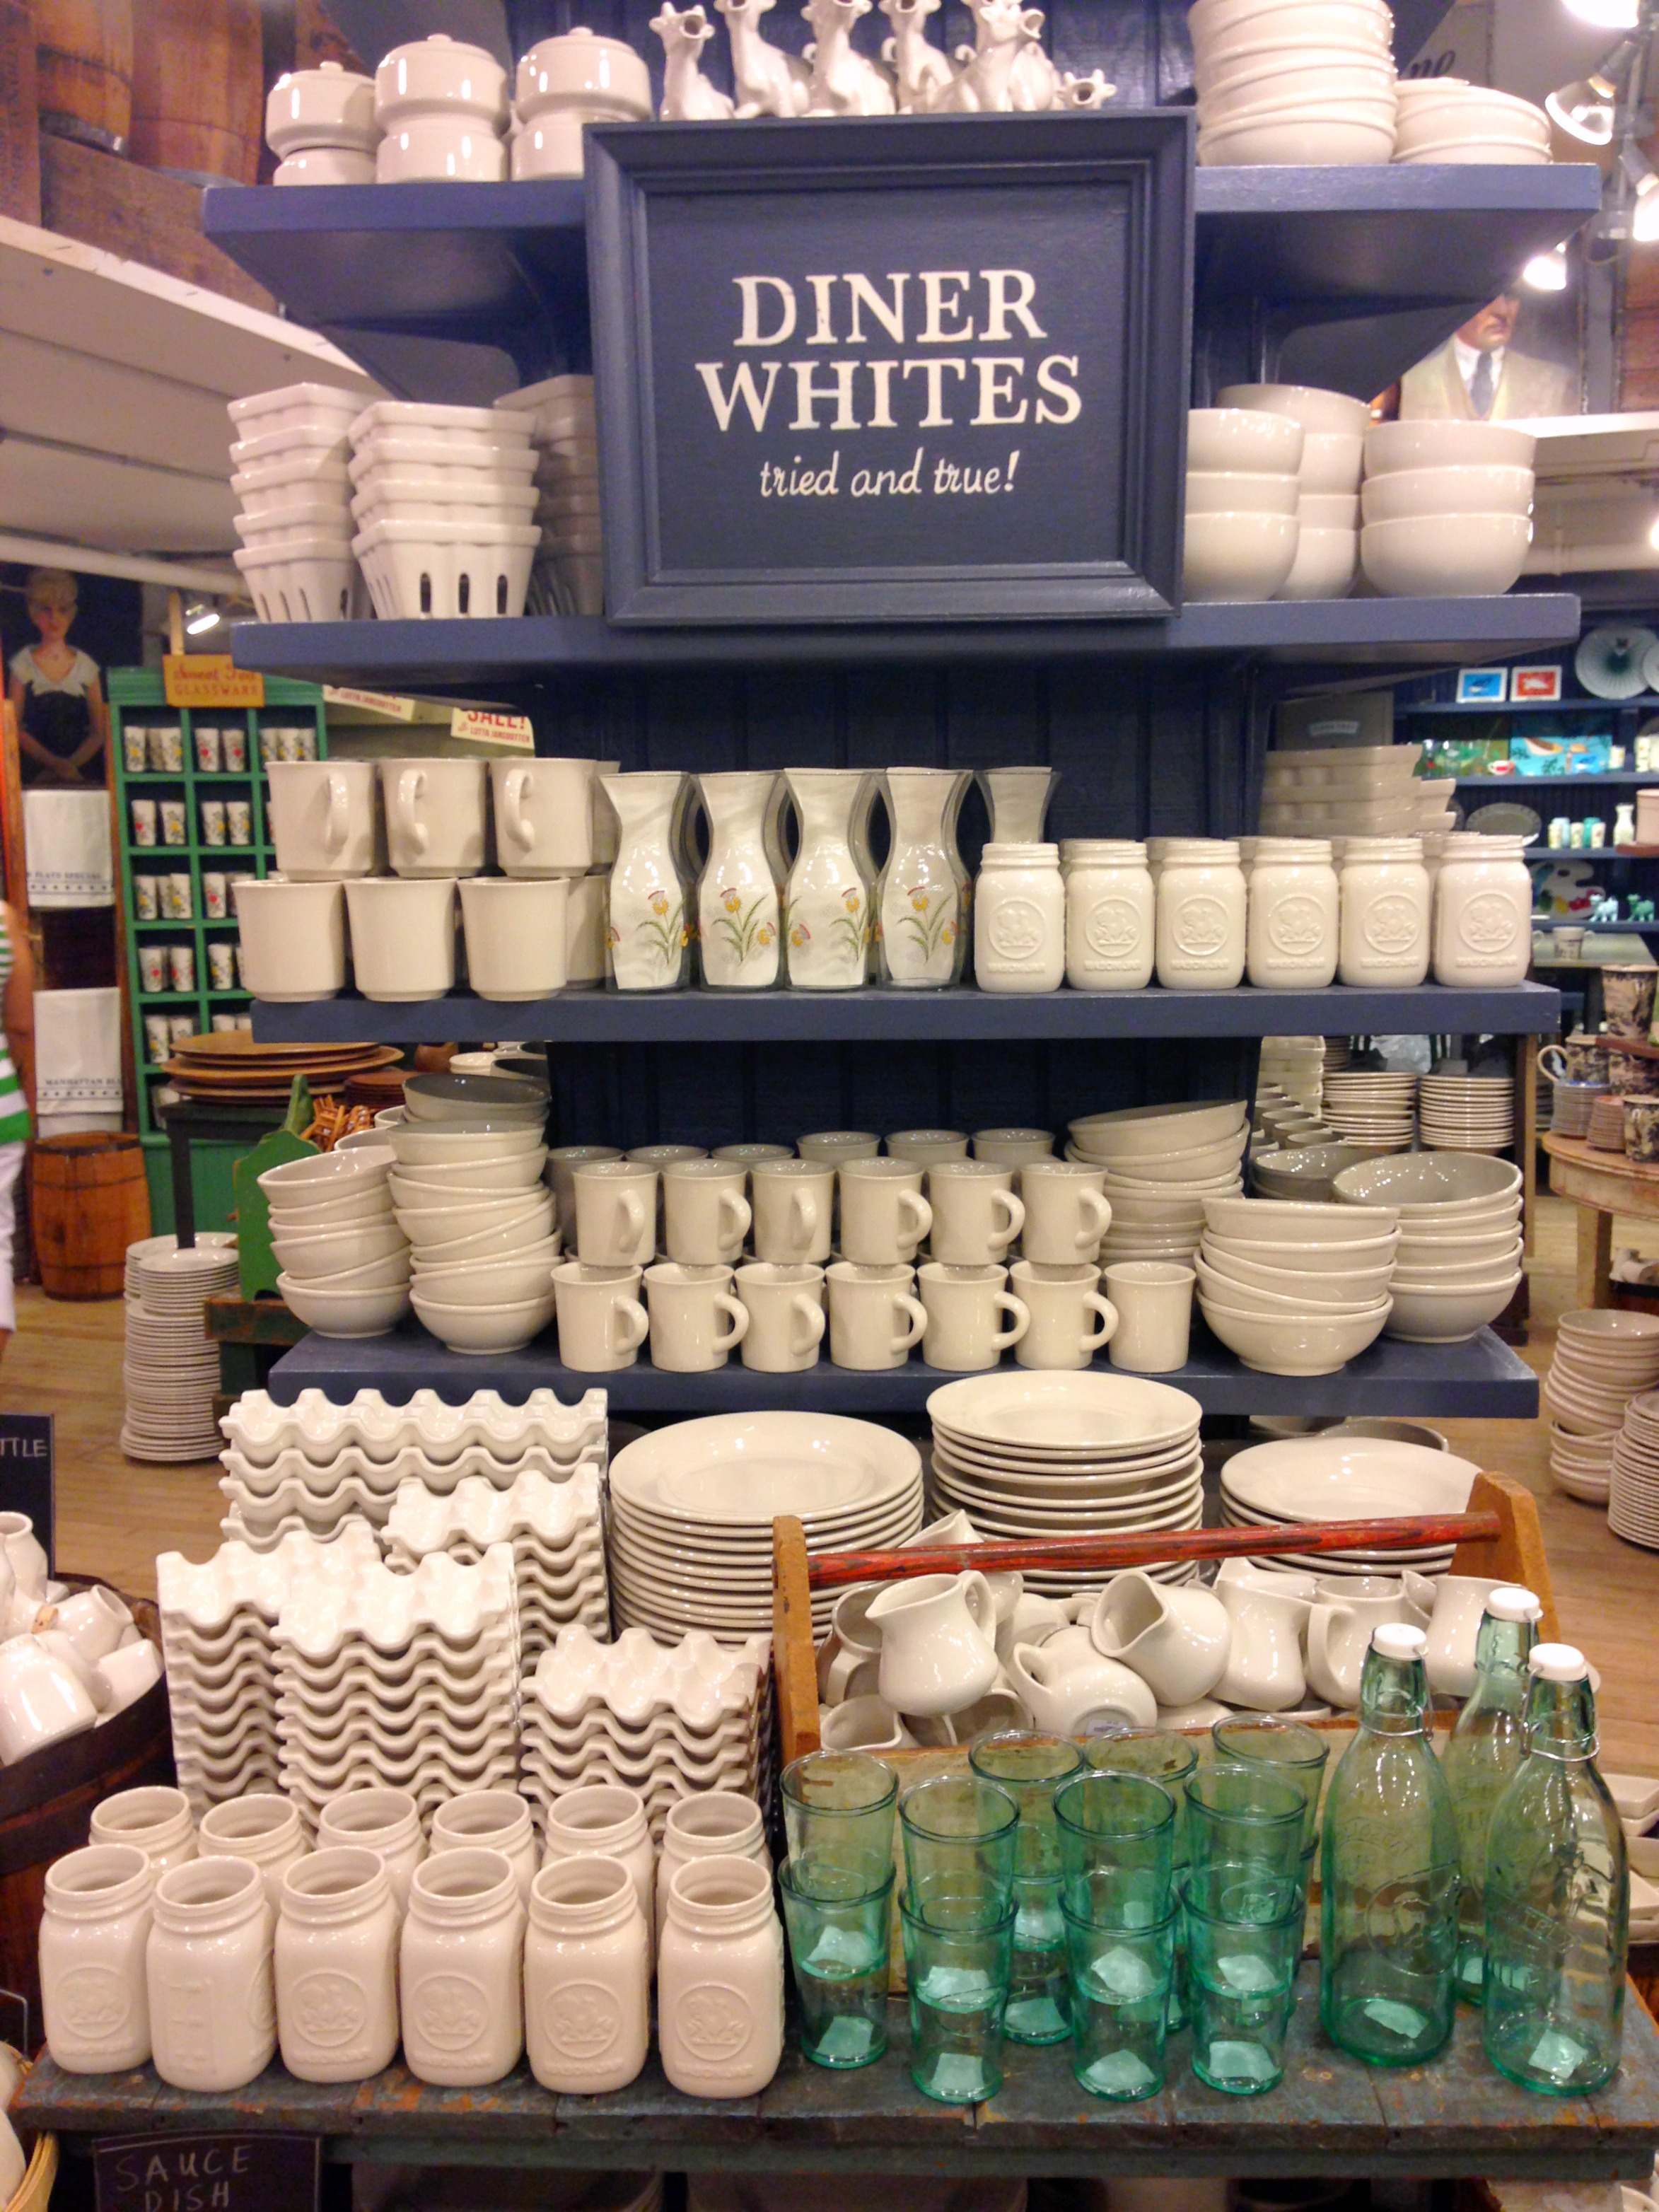 {yes that is the holy grail of creamers at the top of this pic - the classic white cow}